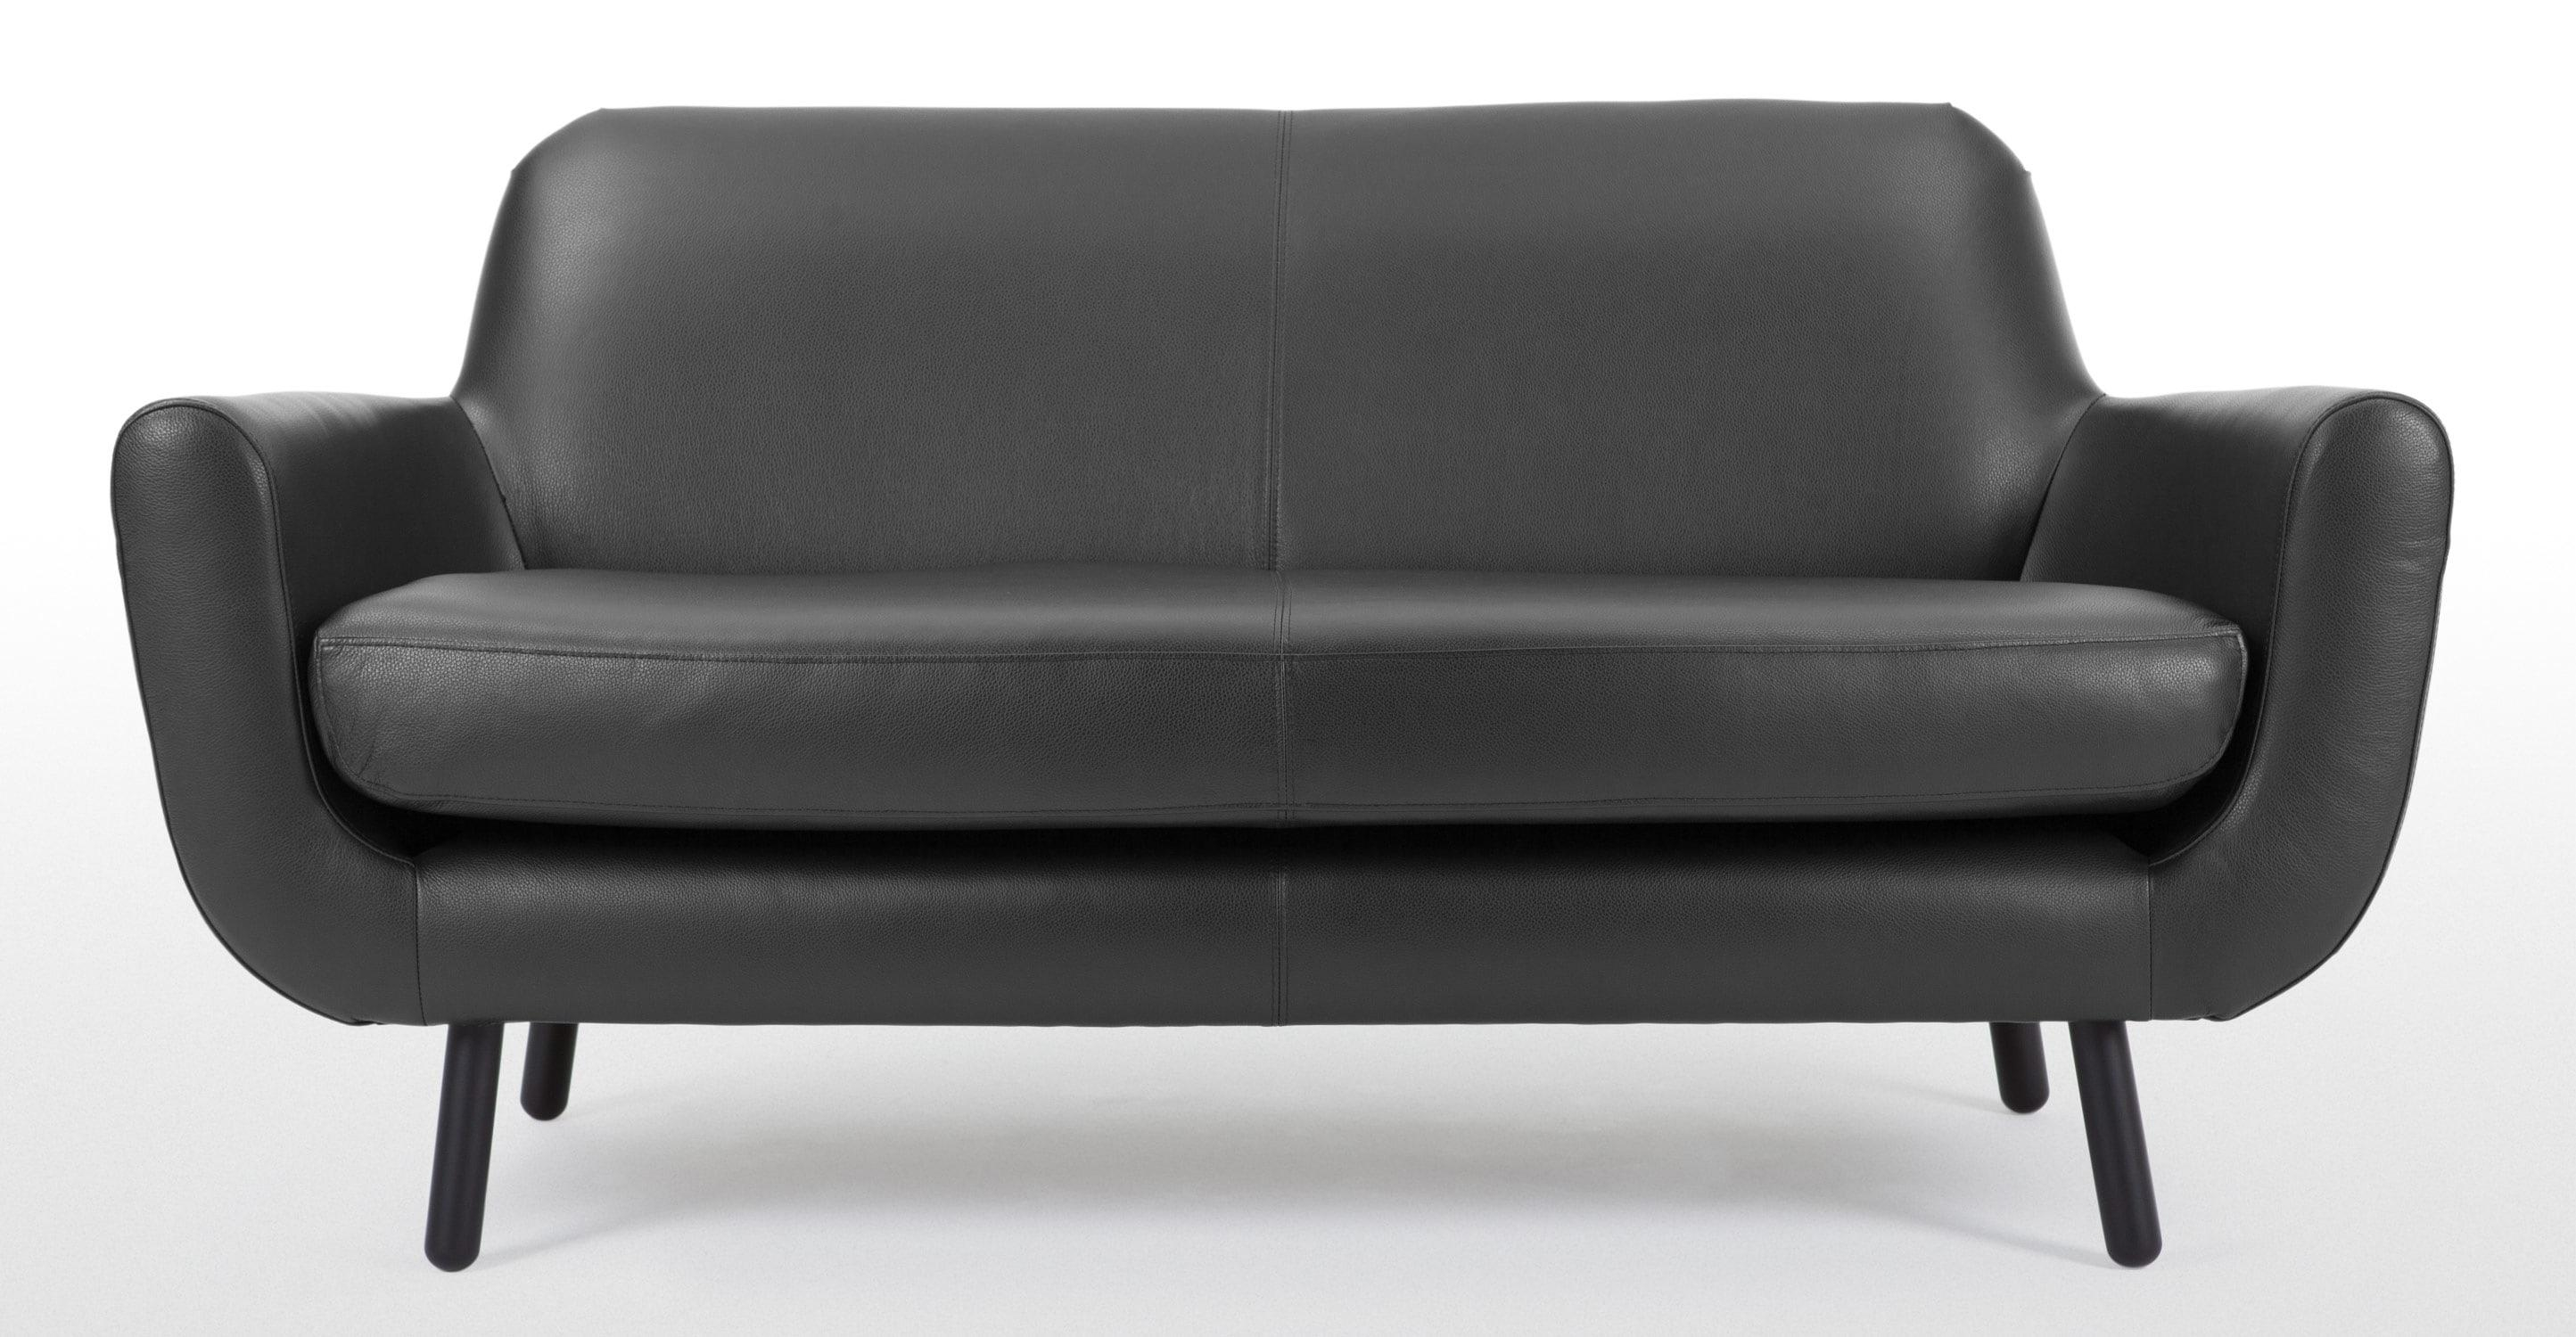 Jonah 2 Seater Sofa In Liquorice Black Premium Leather | Made For Black 2 Seater Sofas (Image 13 of 20)